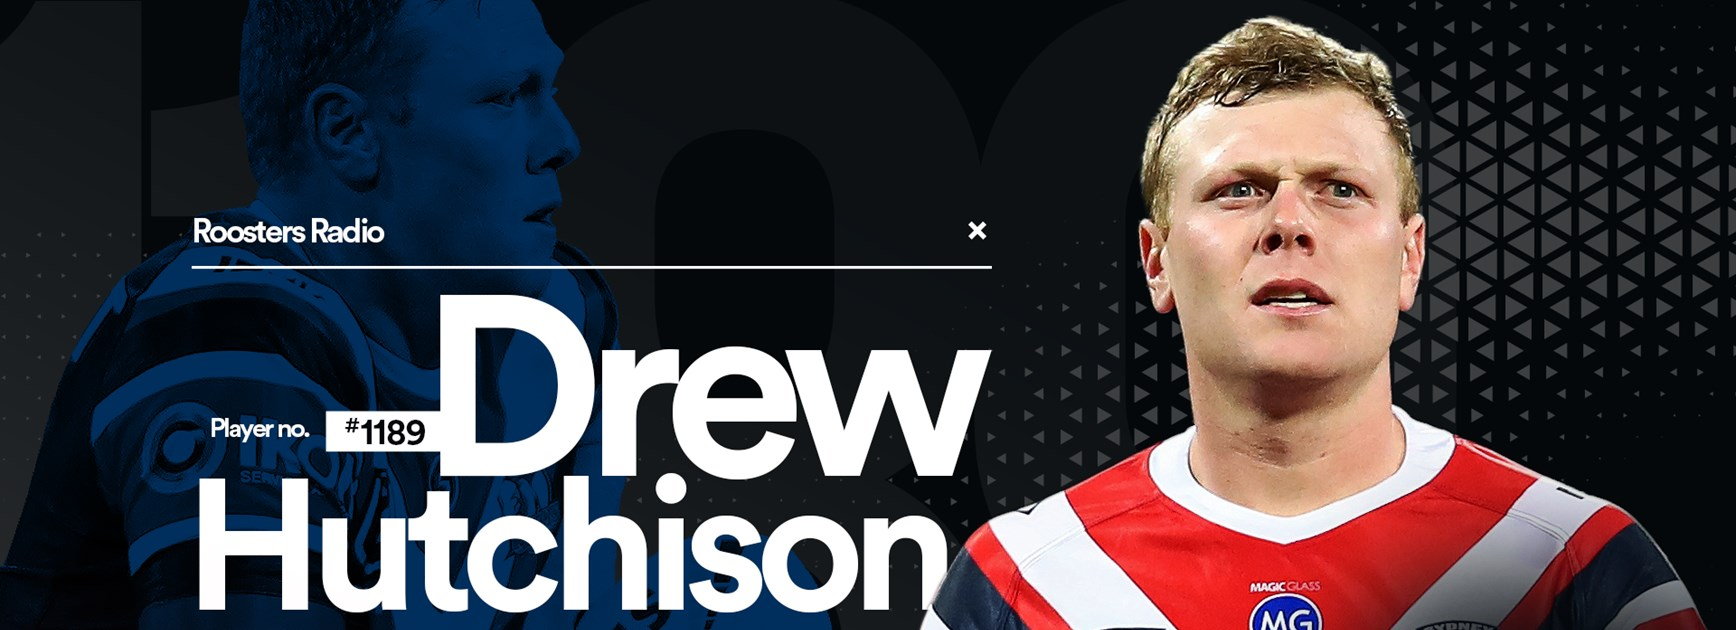 Roosters Radio | Drew Hutchison